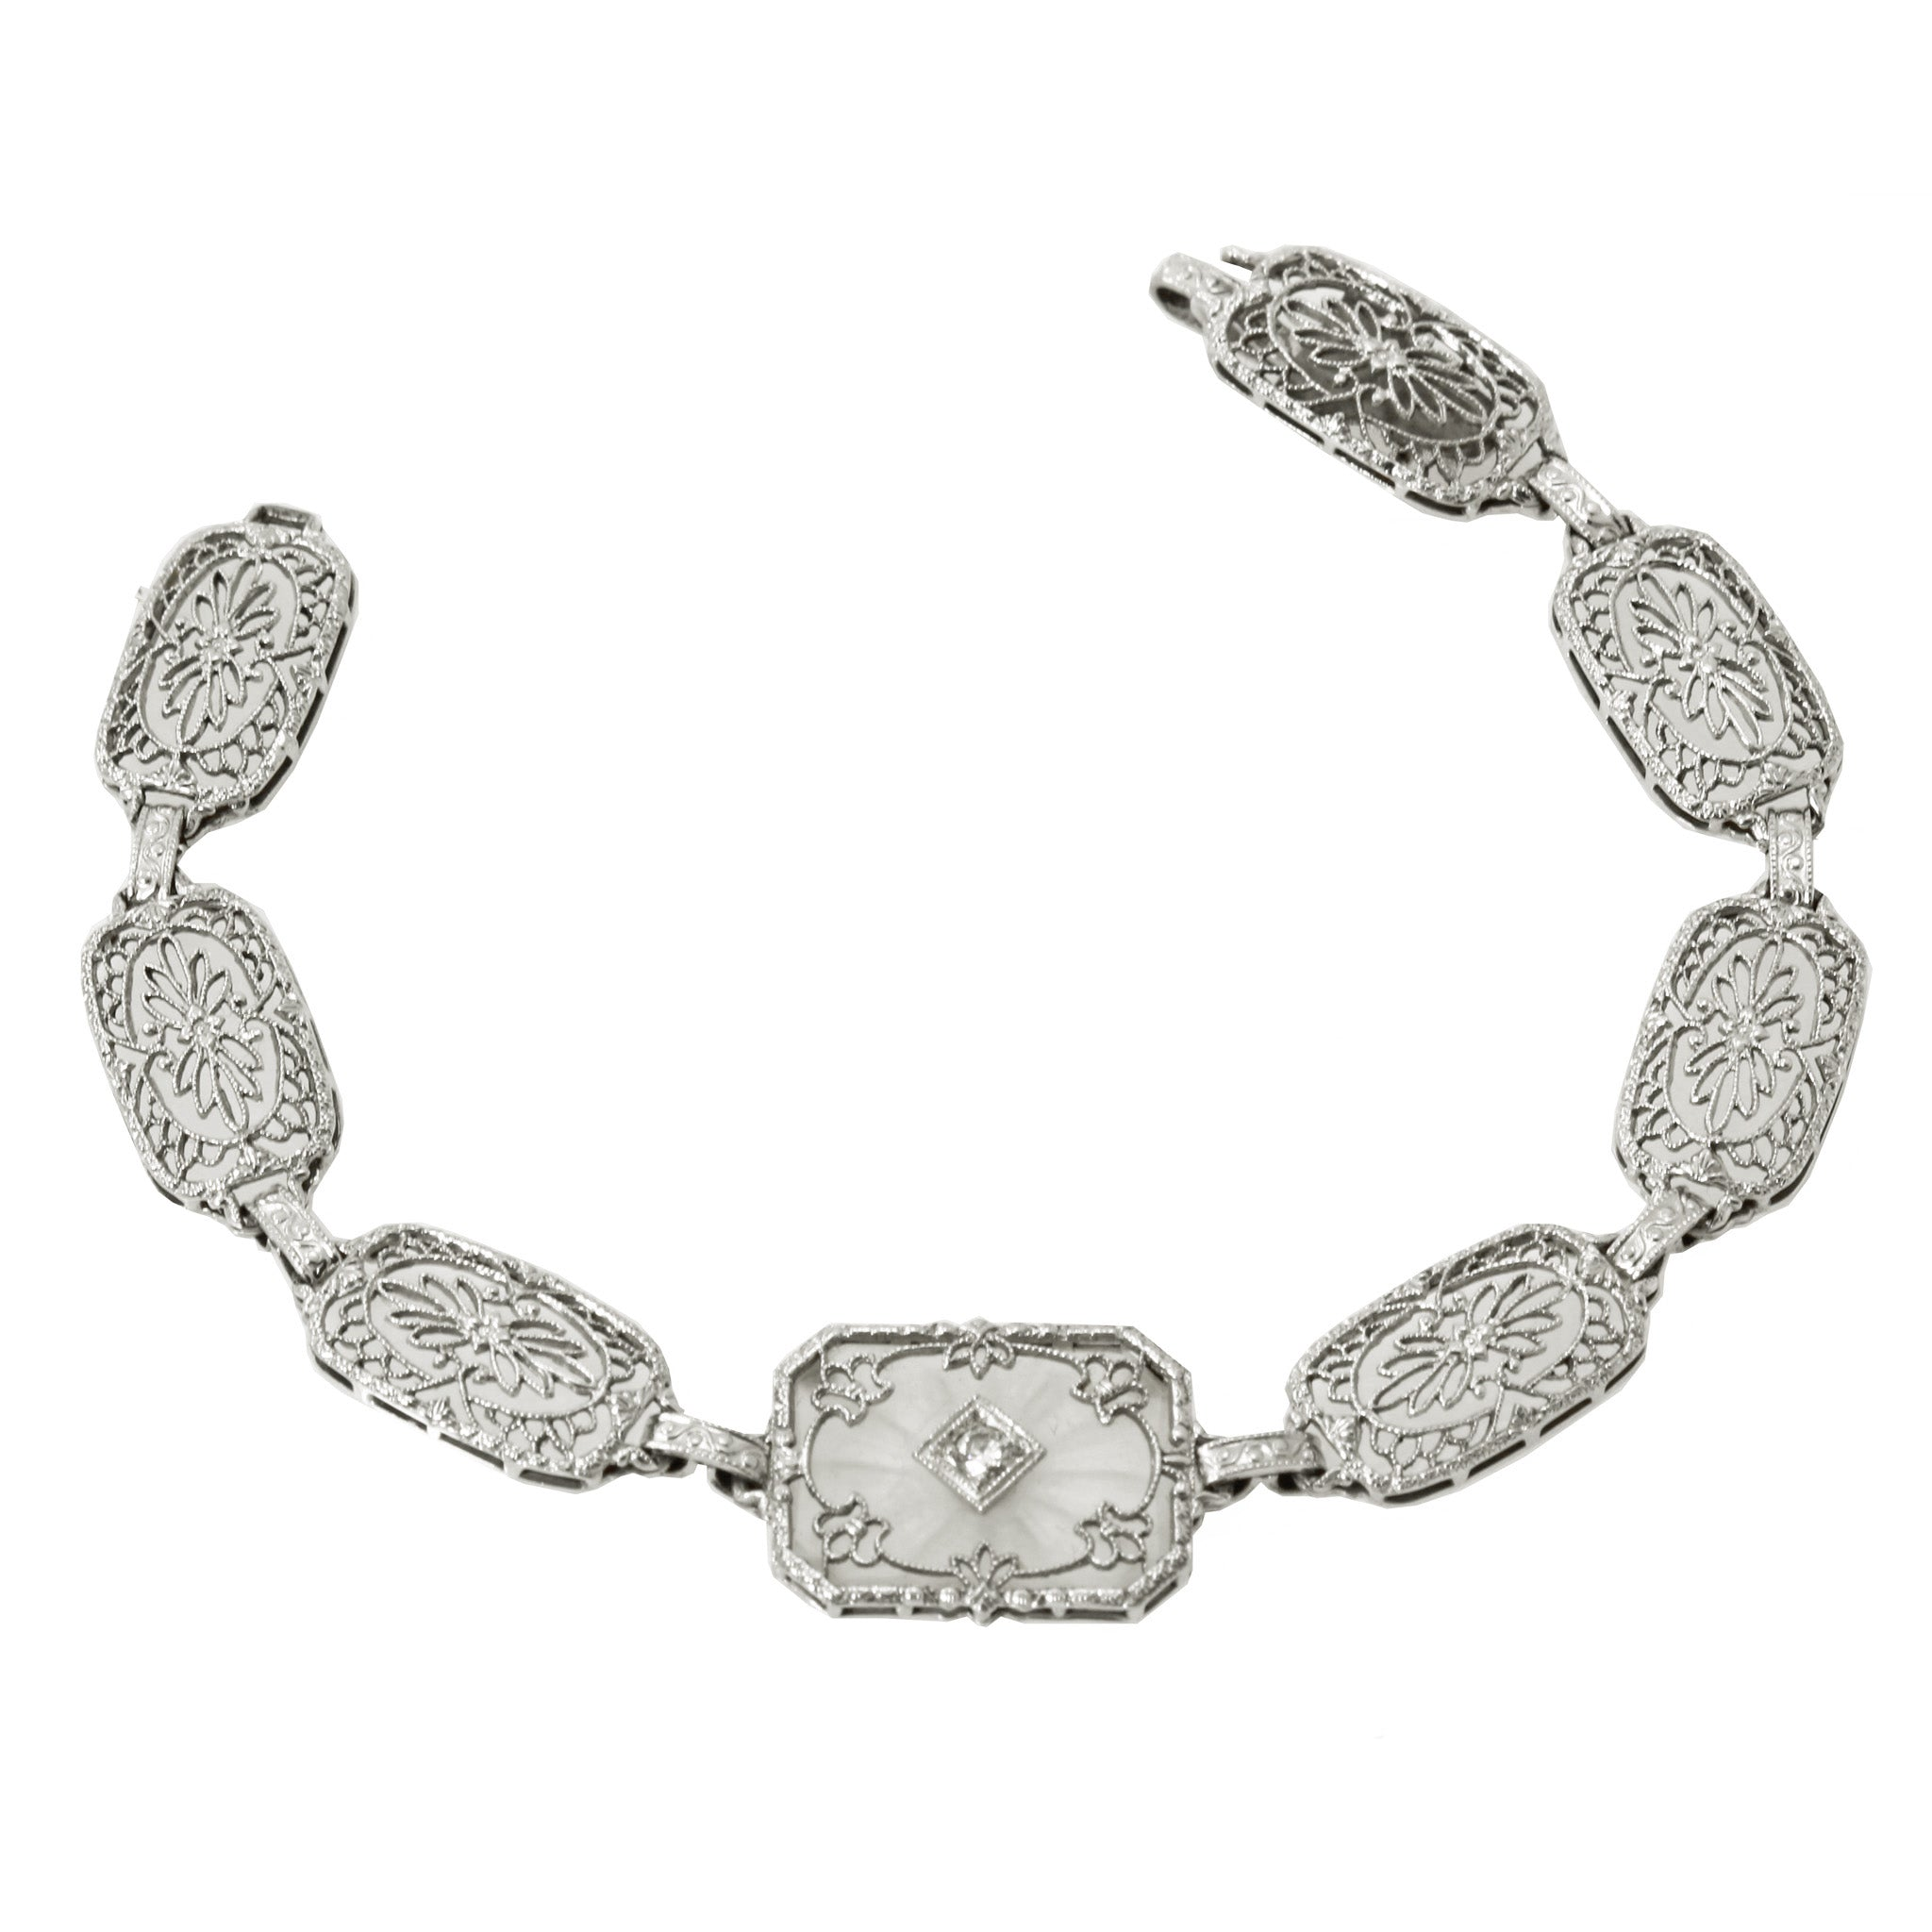 Art Deco 14k Gold, Platinum, Diamond and Rock Crystal Filigree Bracelet Front